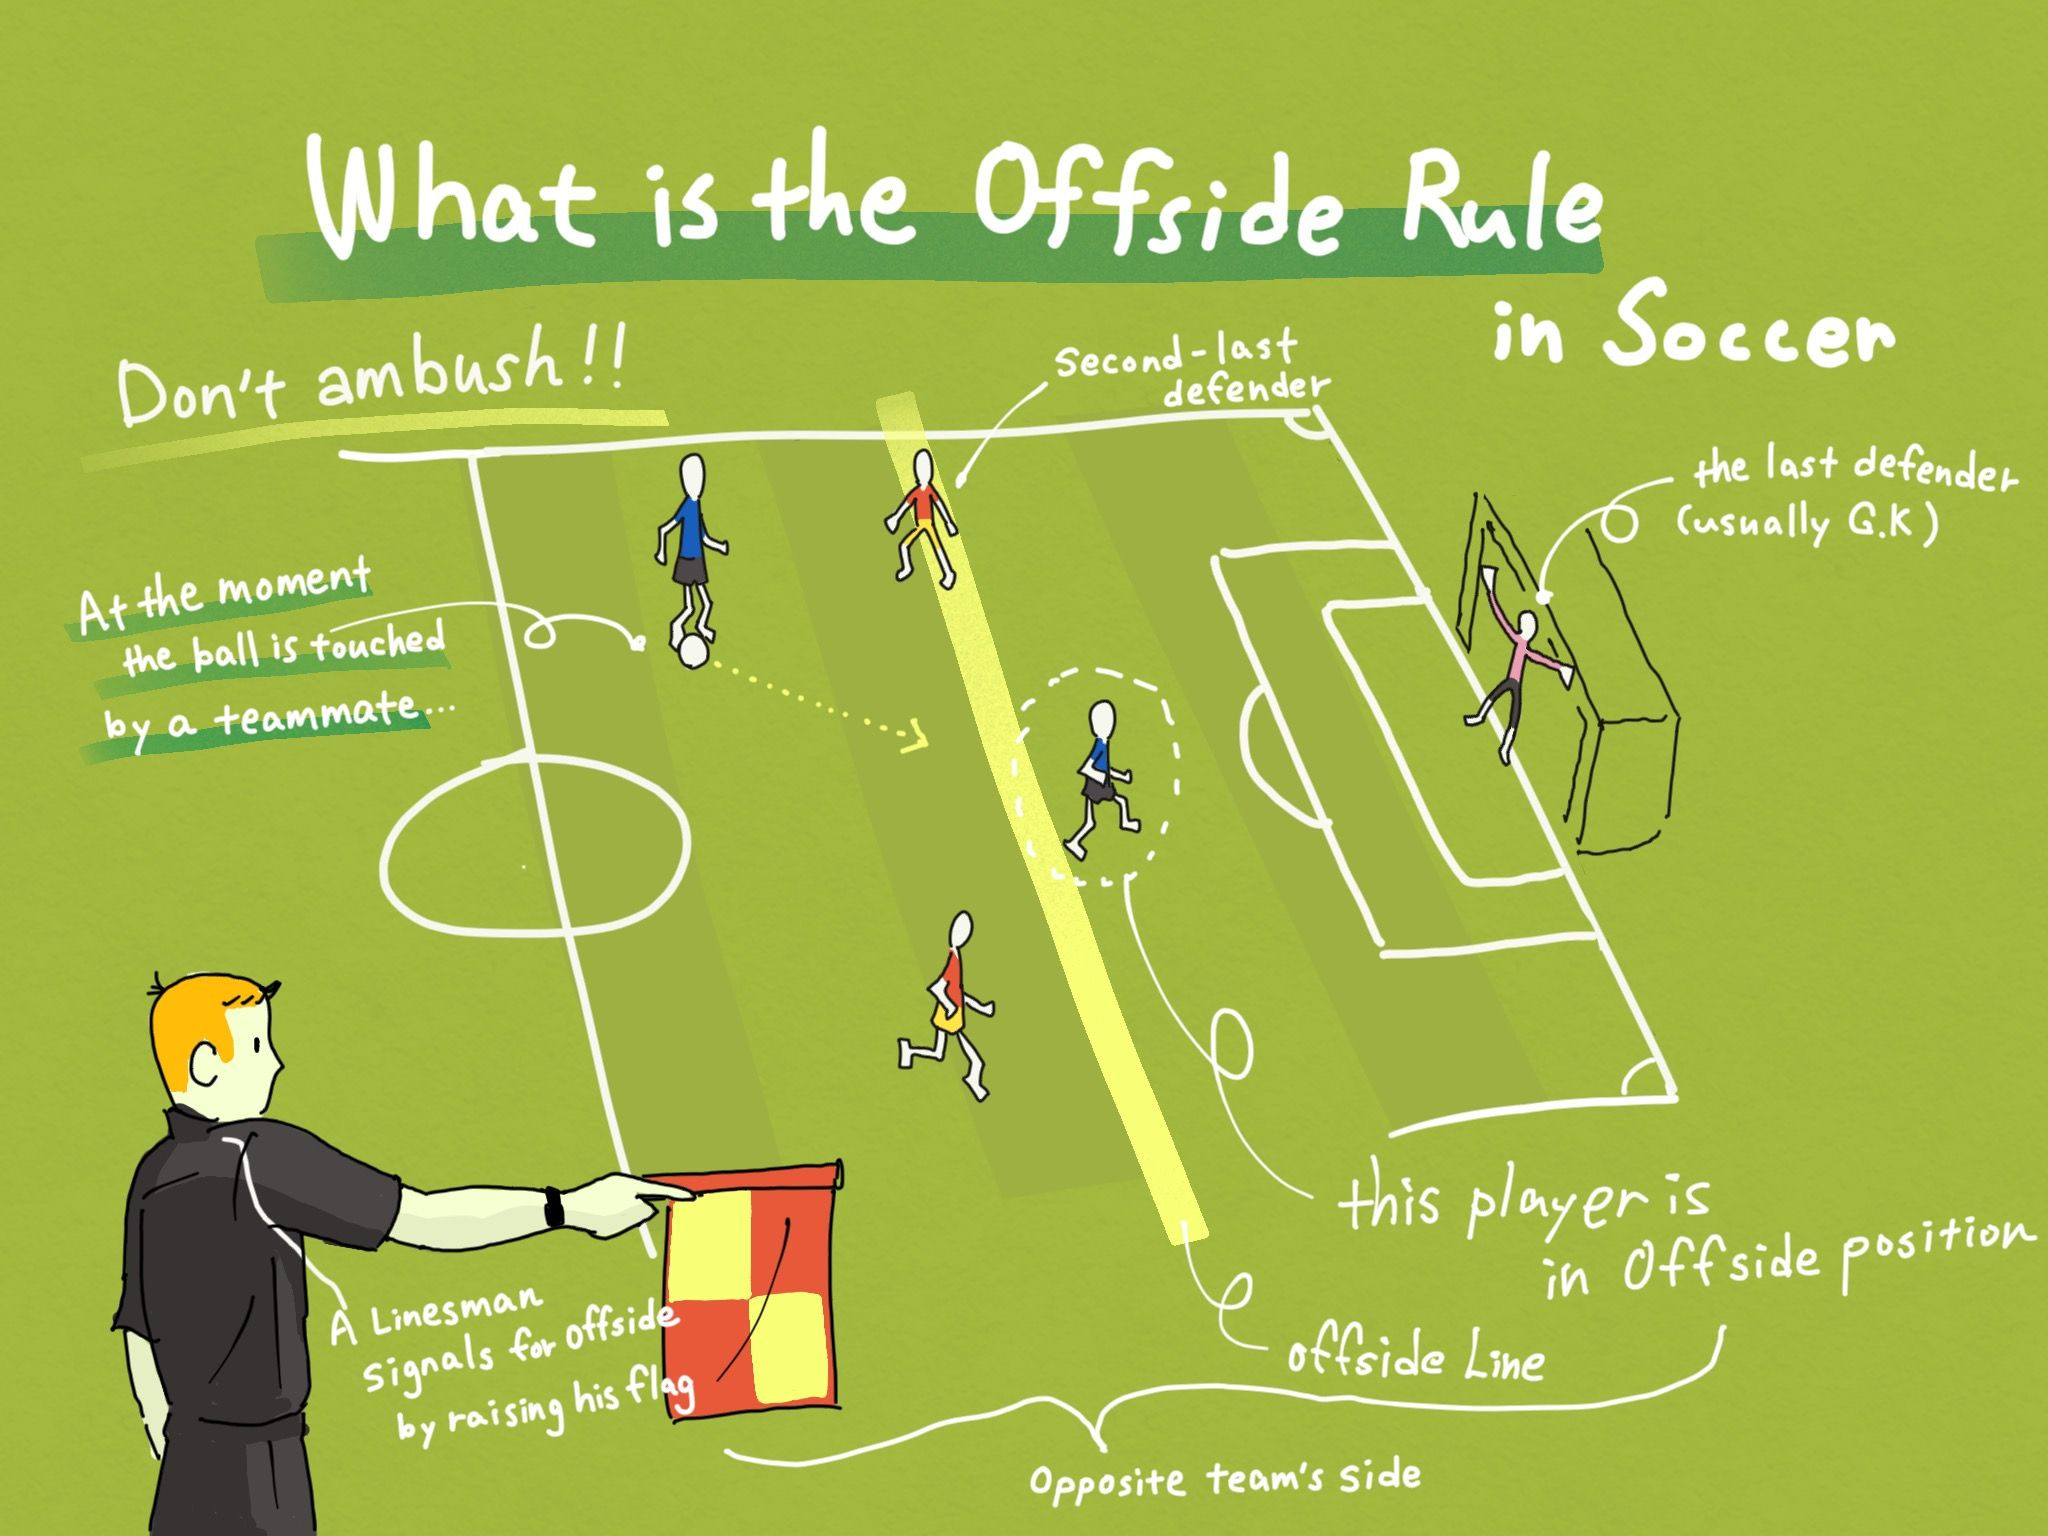 What Is The Offside Rule In Soccer Image Offside Rule Soccer Images Soccer